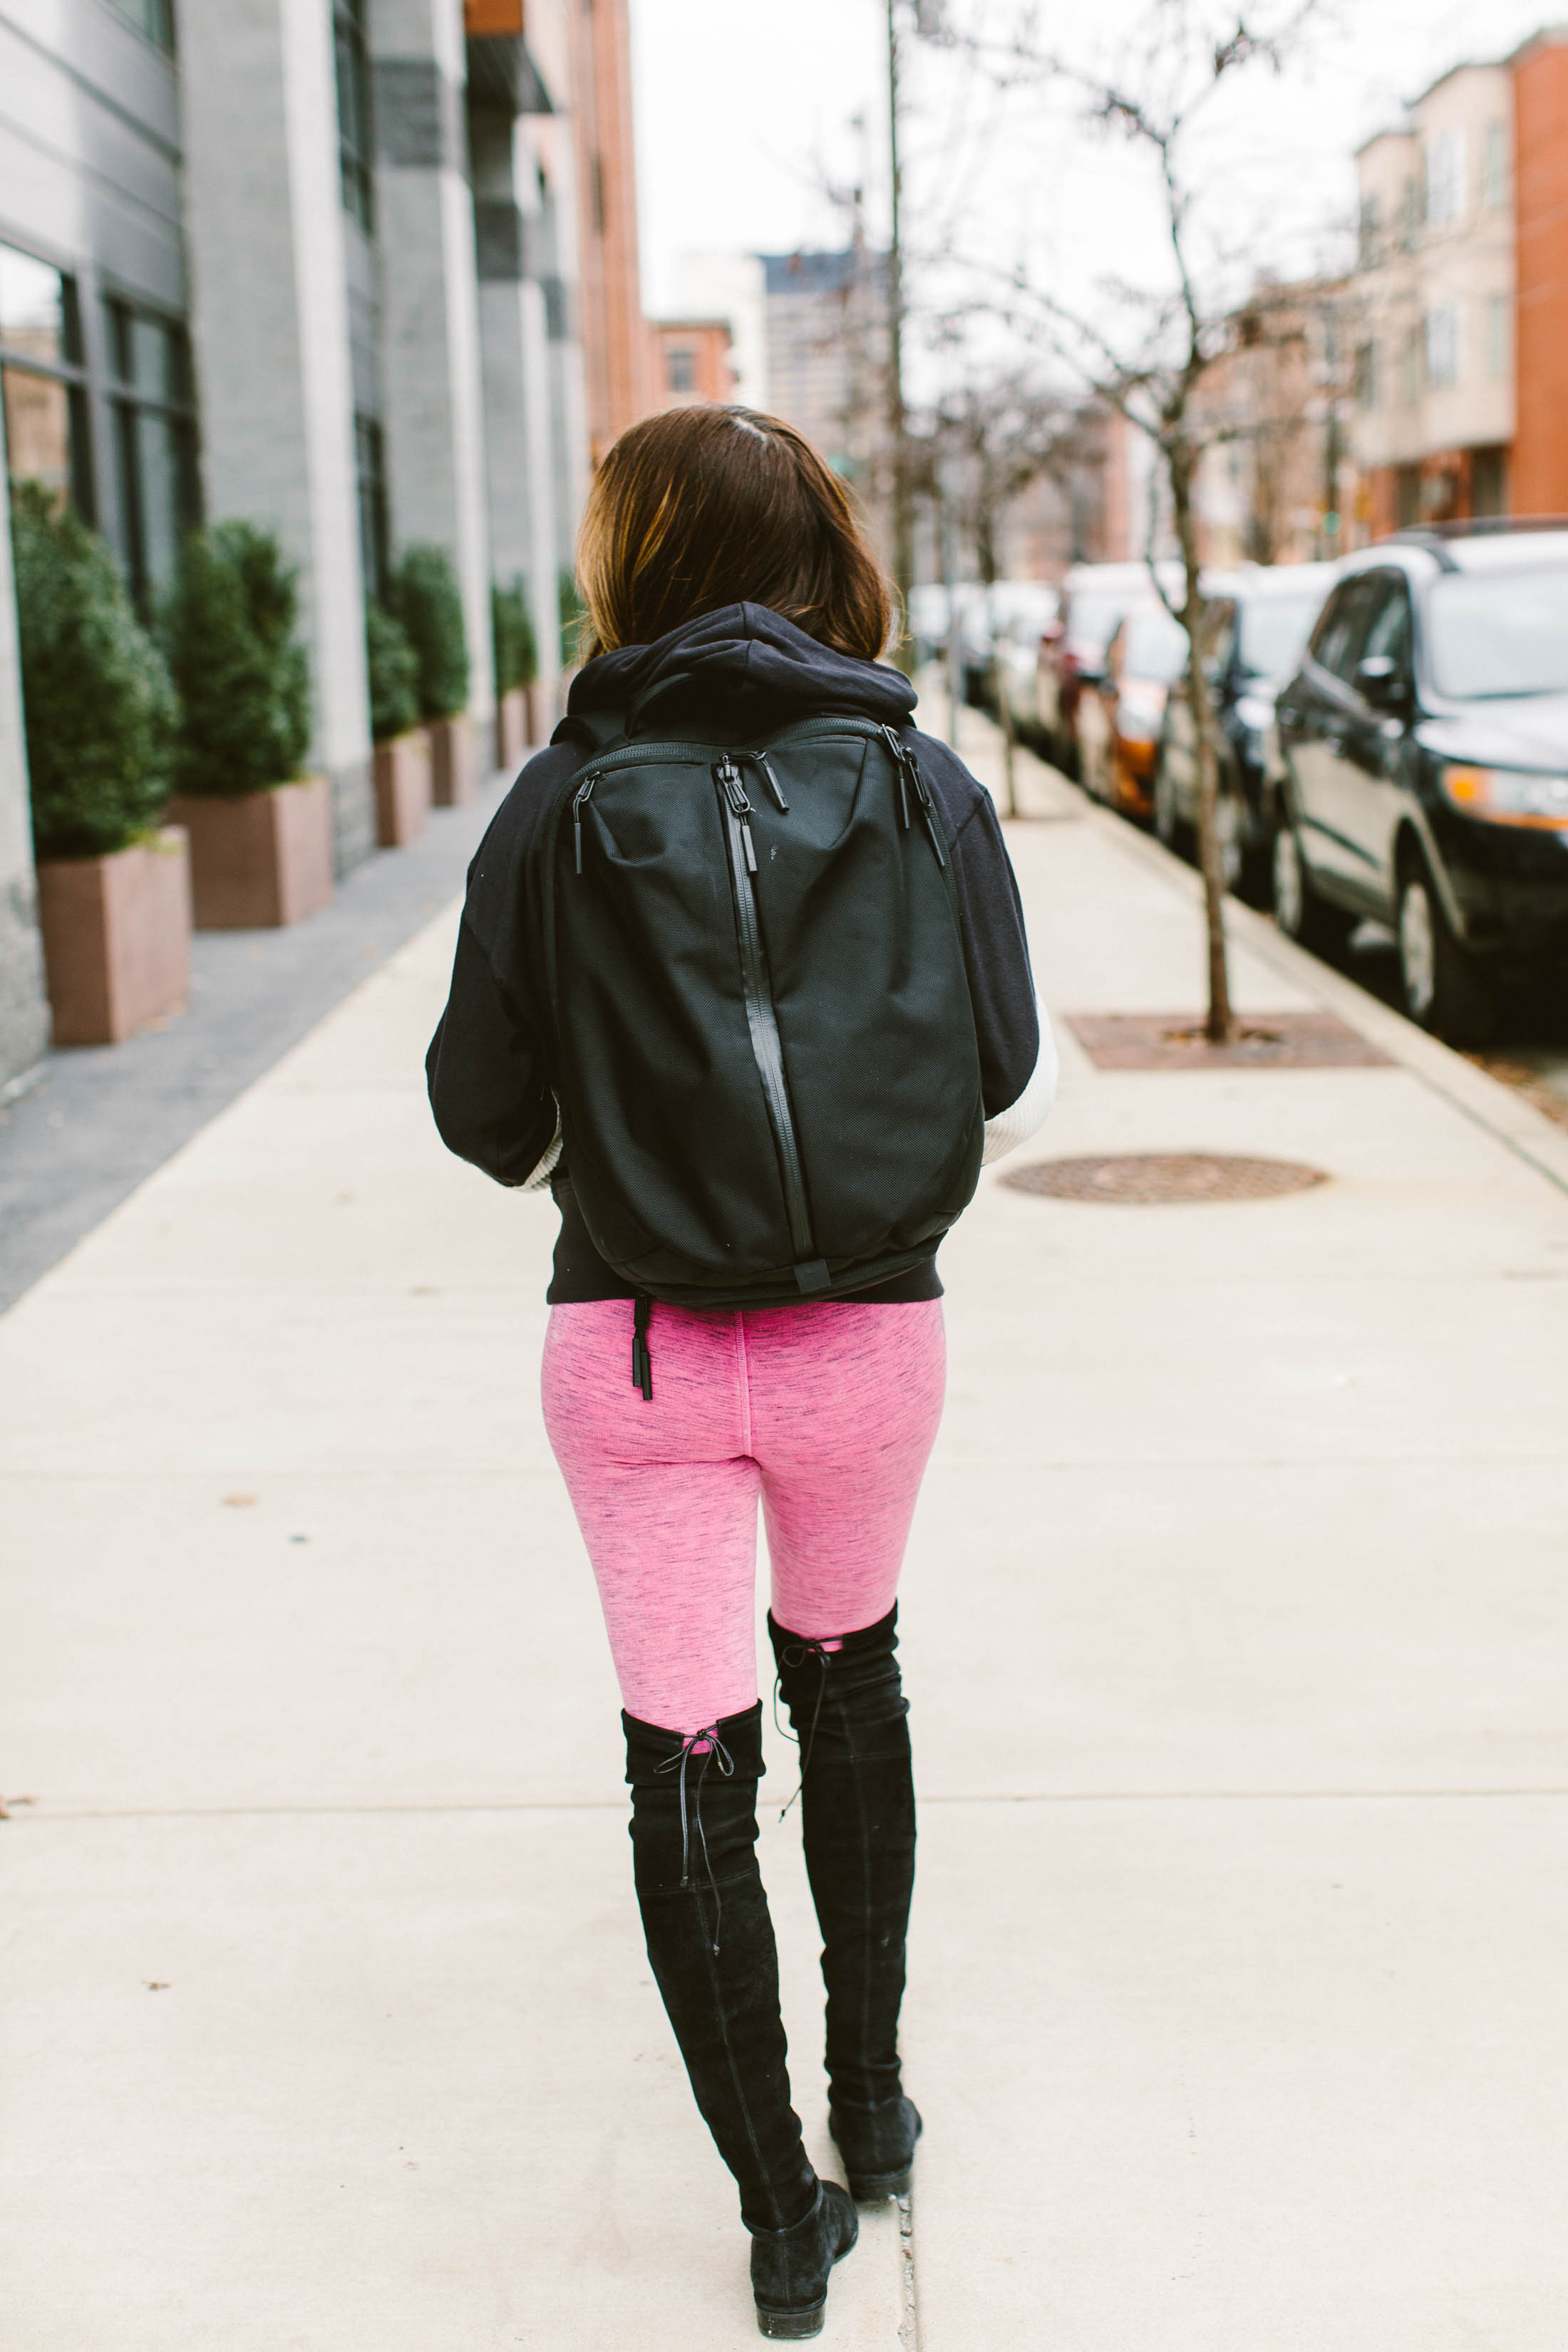 That cozy sweet spot between pajamas & athleisure you can wear outside? We got it. Leggings, hoodies, skinny sweatpants...we got your comfy right here.